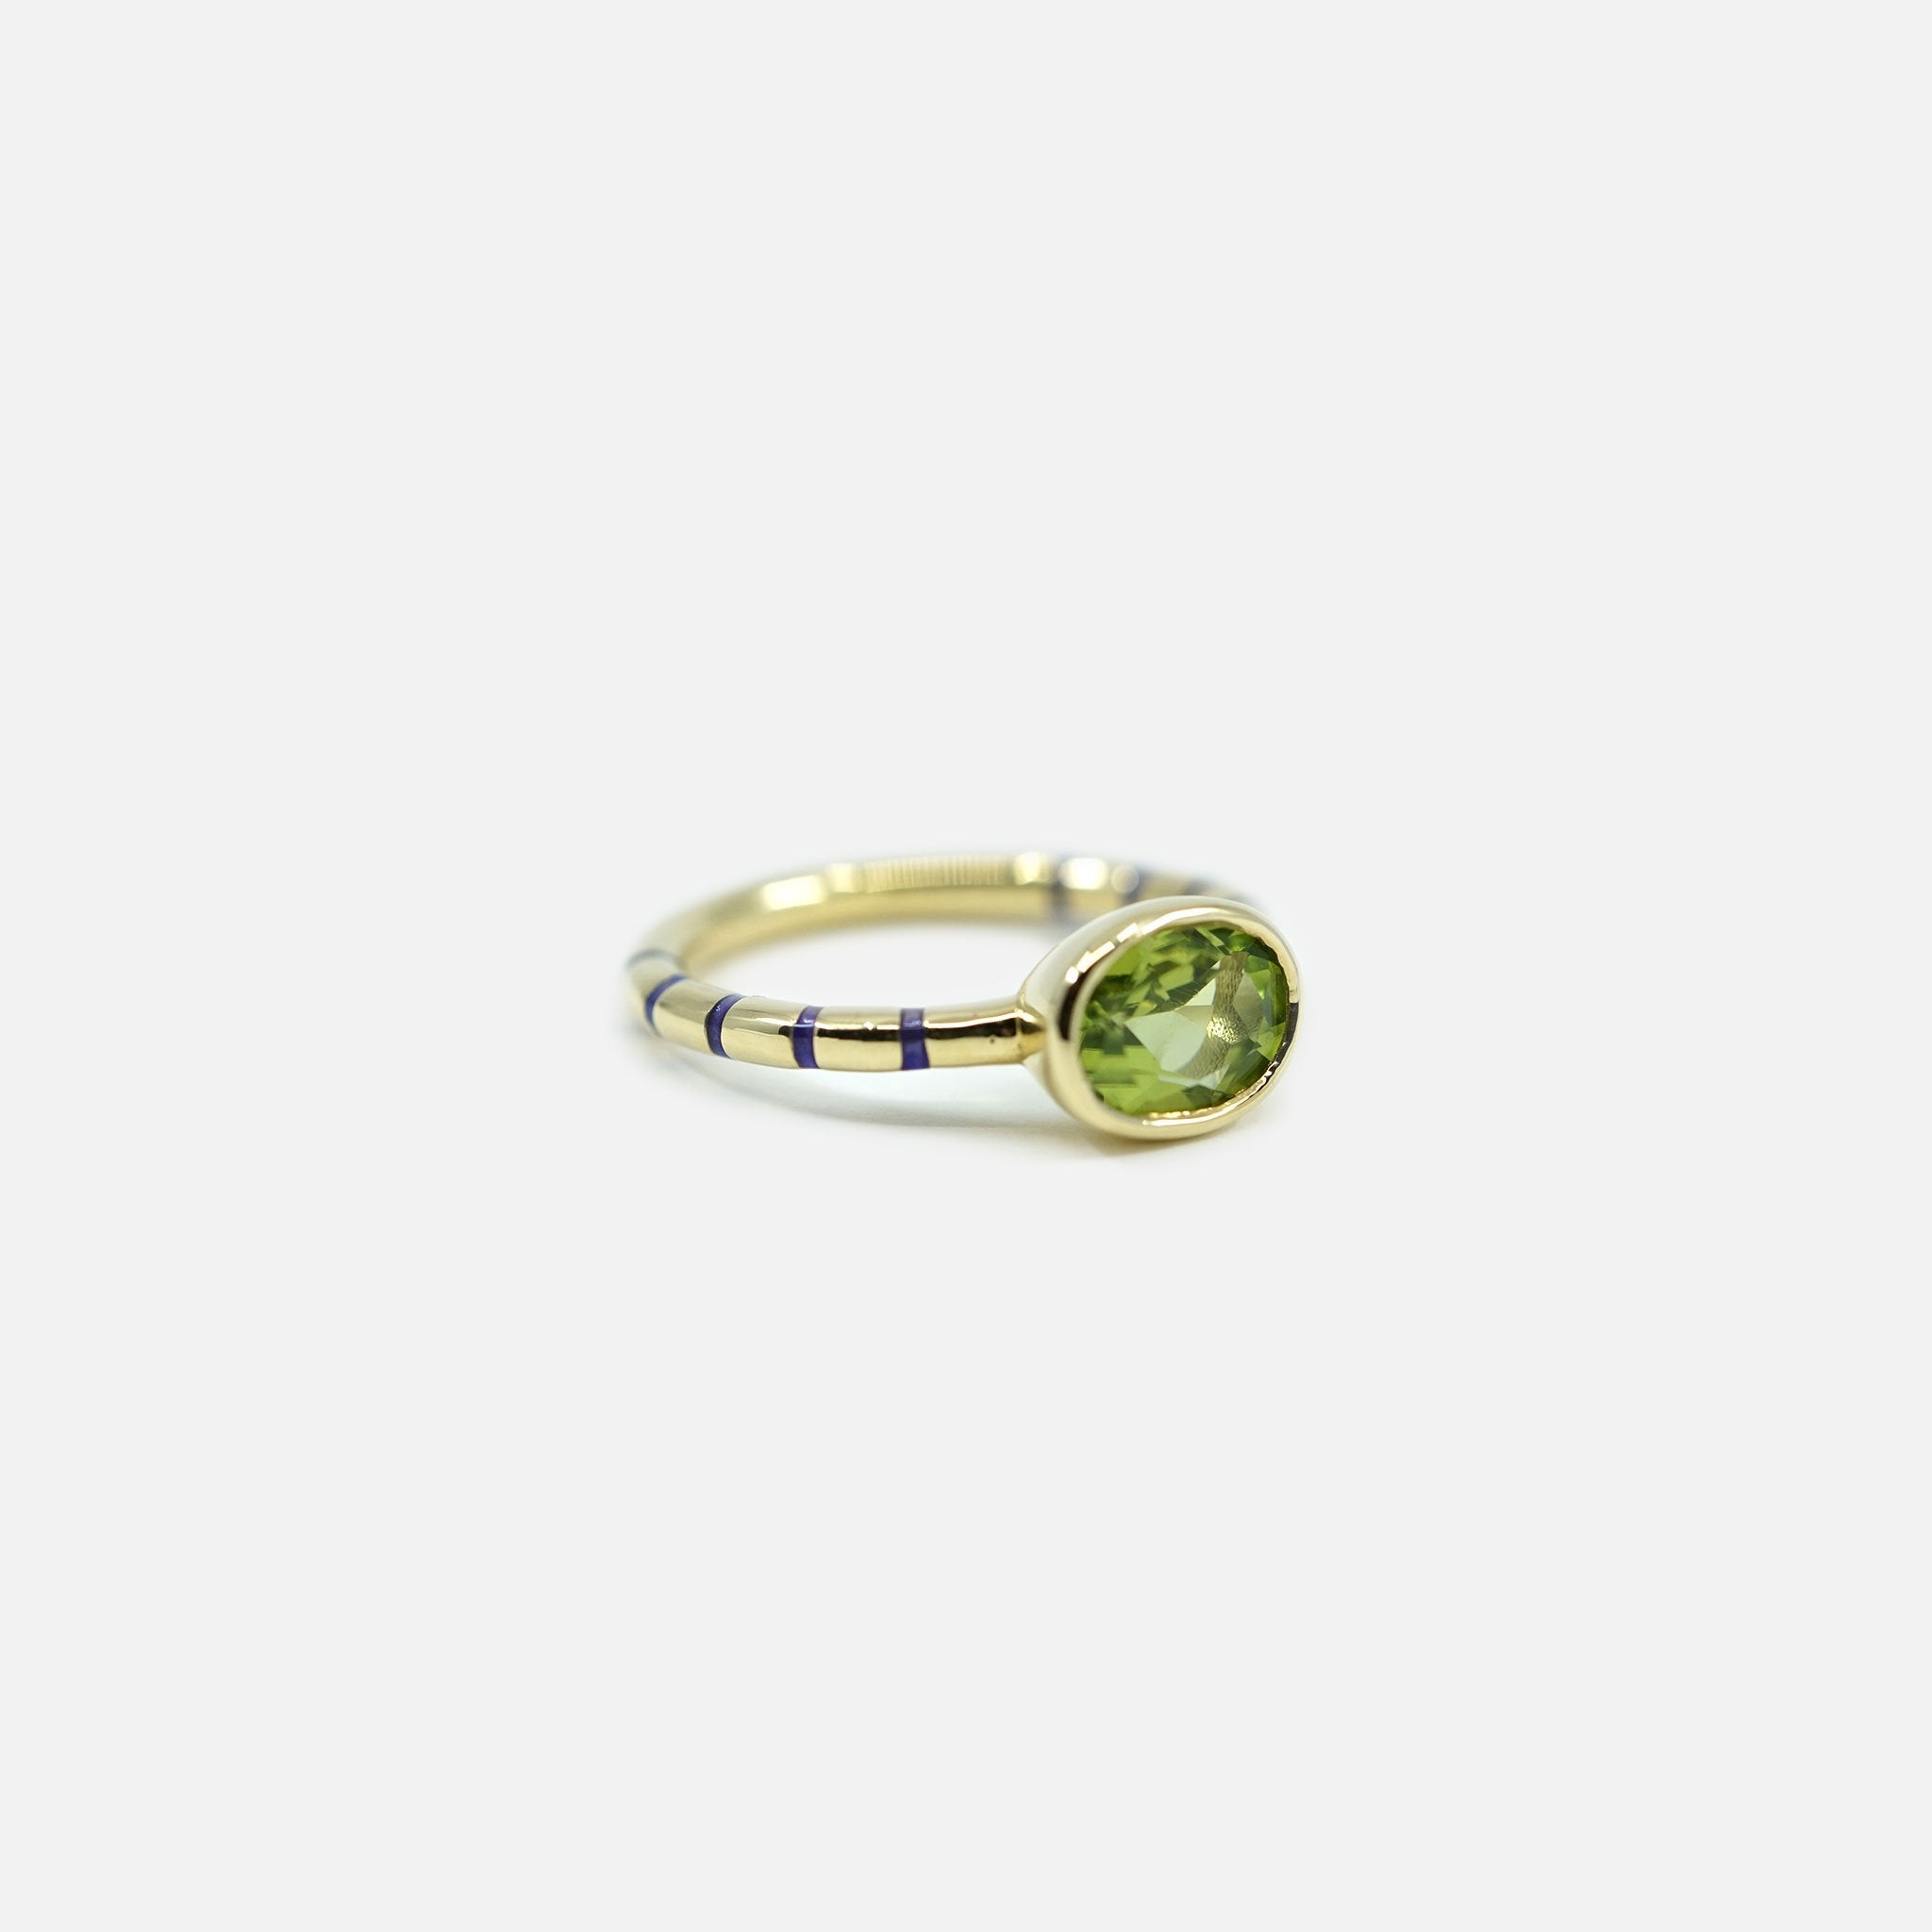 Shirley Bezel Set Striped Enamel Ring - Peridot/Violet